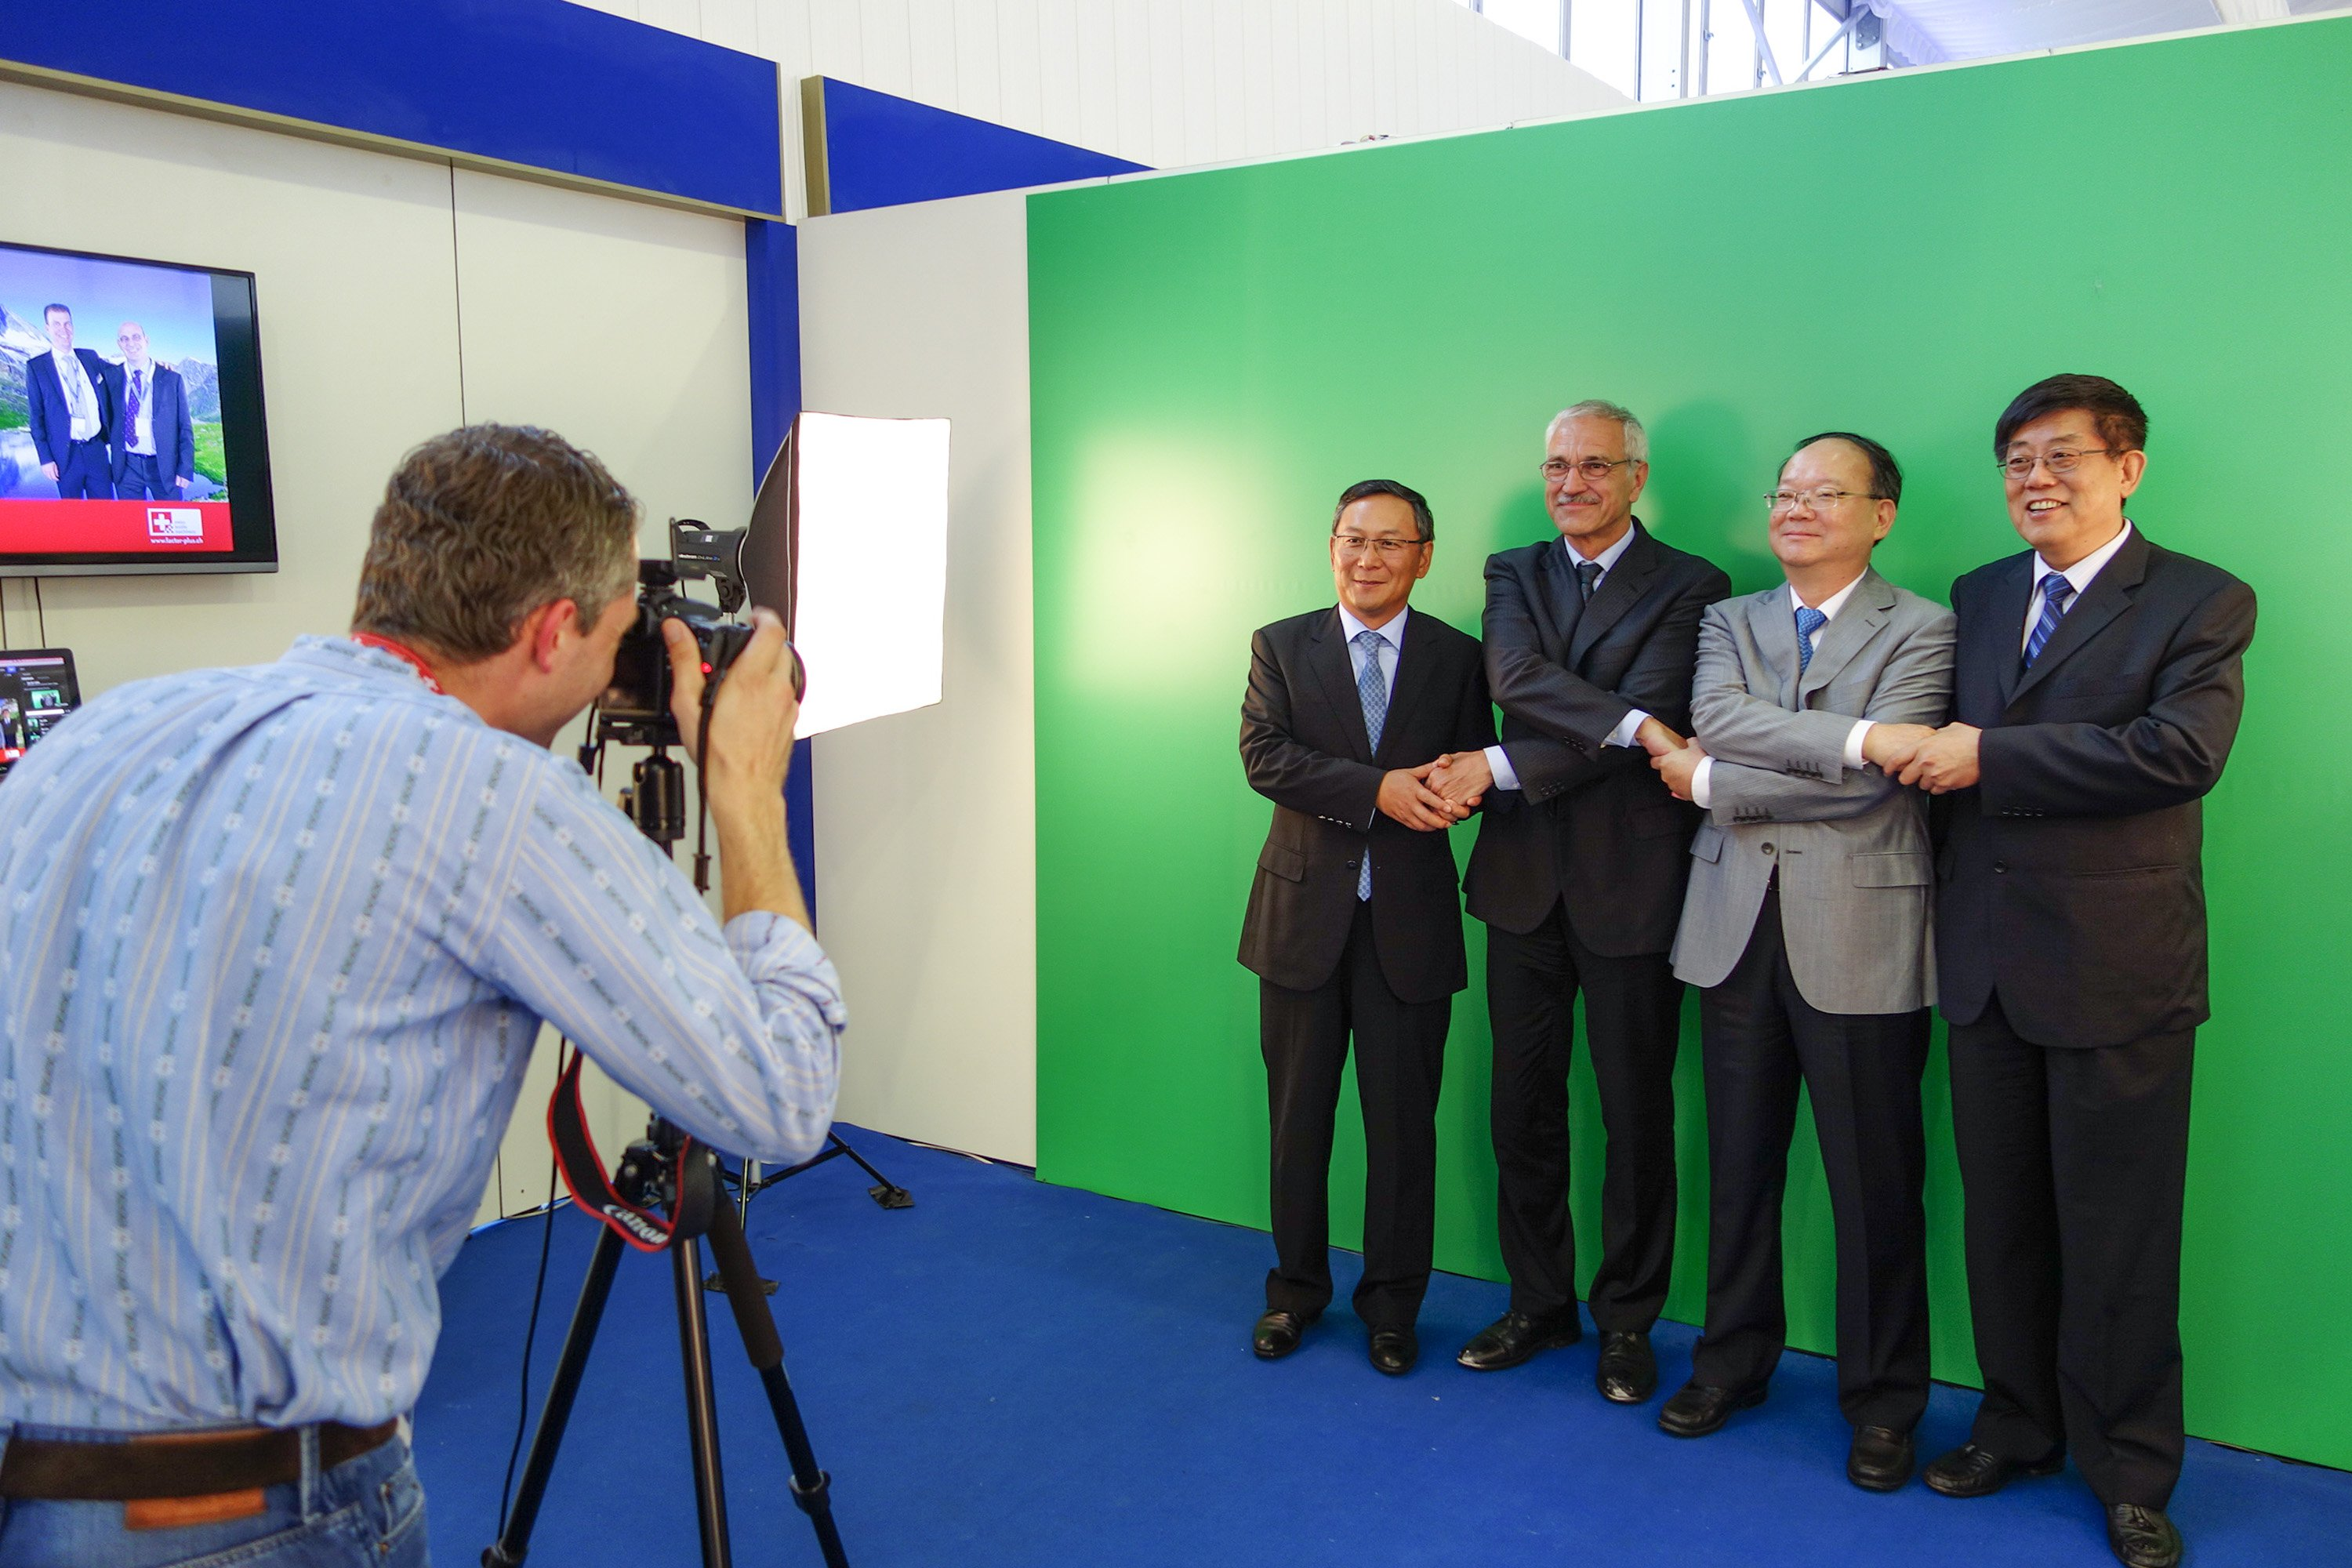 Greenscreen Fotostudio für SWISSMEM an der ITMA 2014 in Shanghai, China